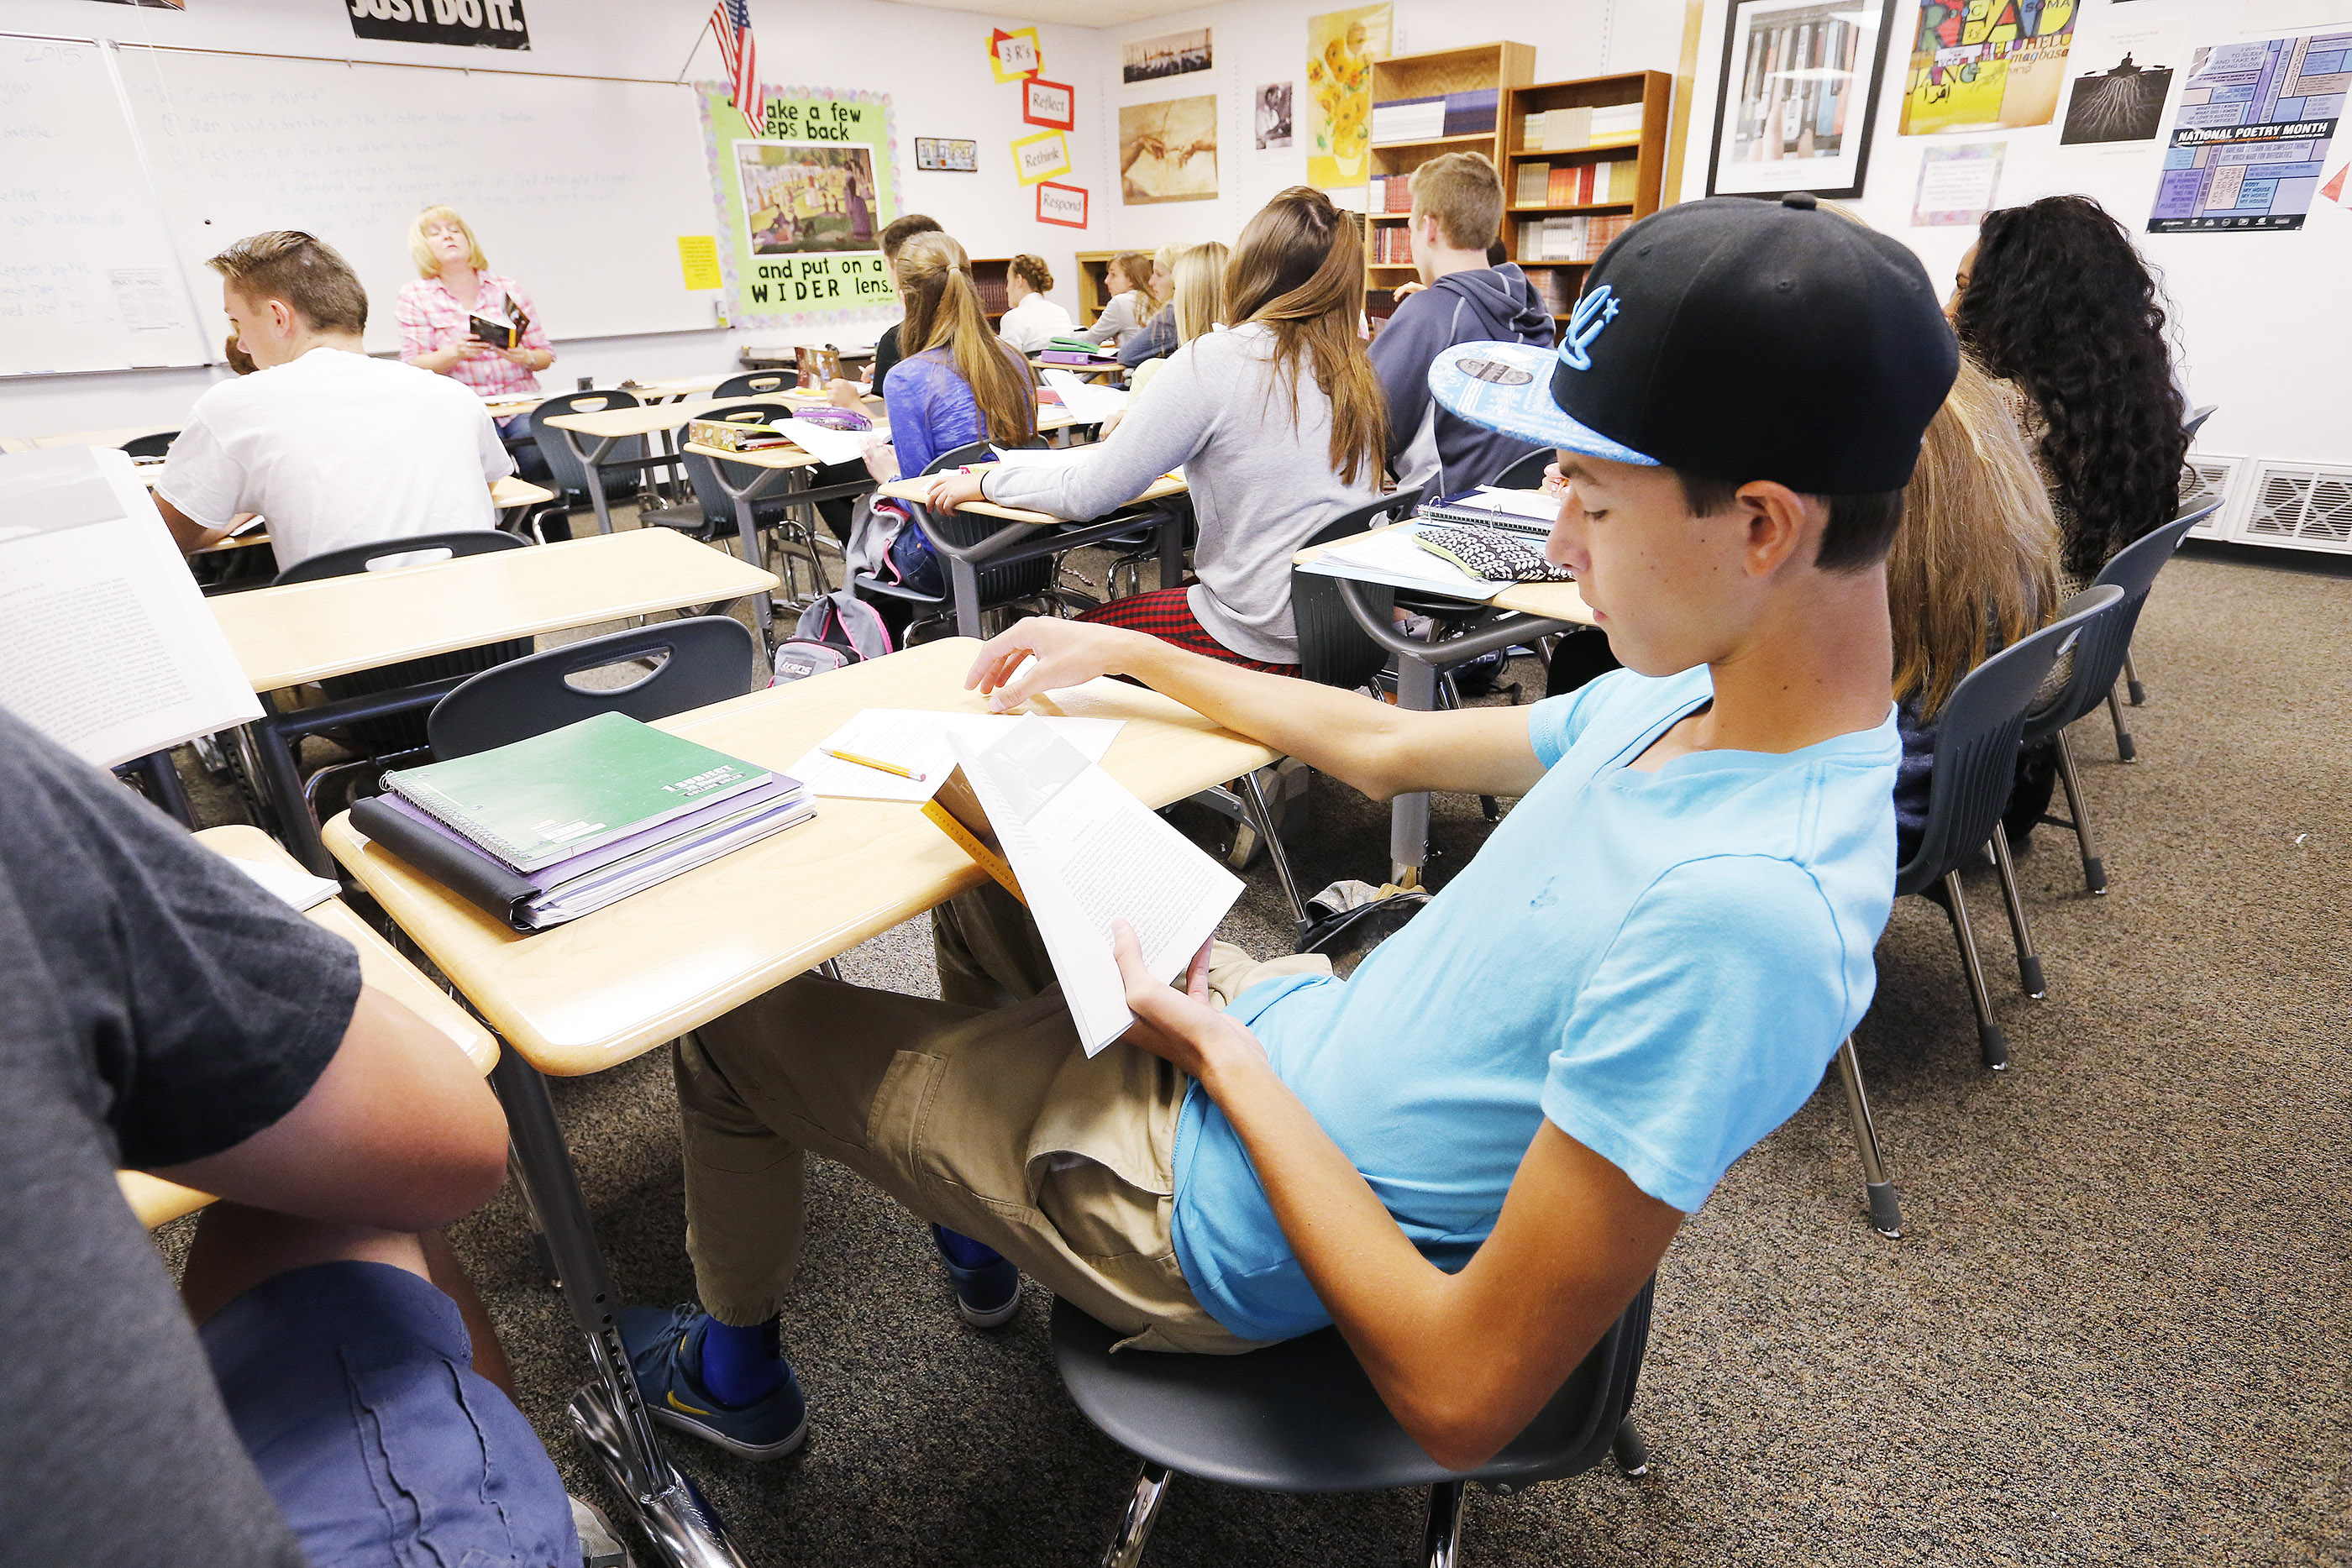 Students from Viewmont High School atttend class in a portable classroom in Bountiful Friday, Oct. 2, 2015.